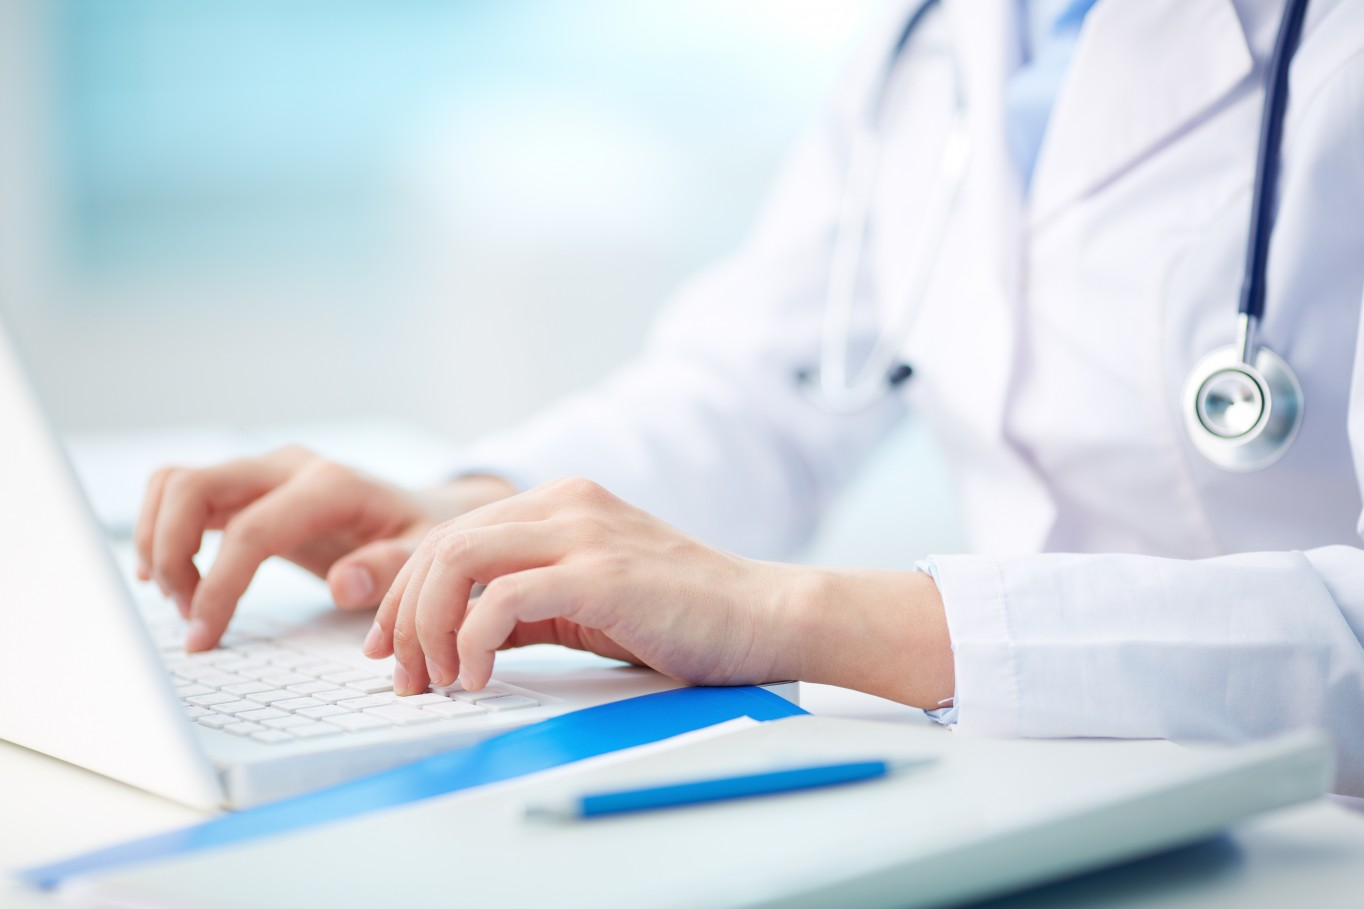 20258980 - close-up of a medical worker typing on laptop